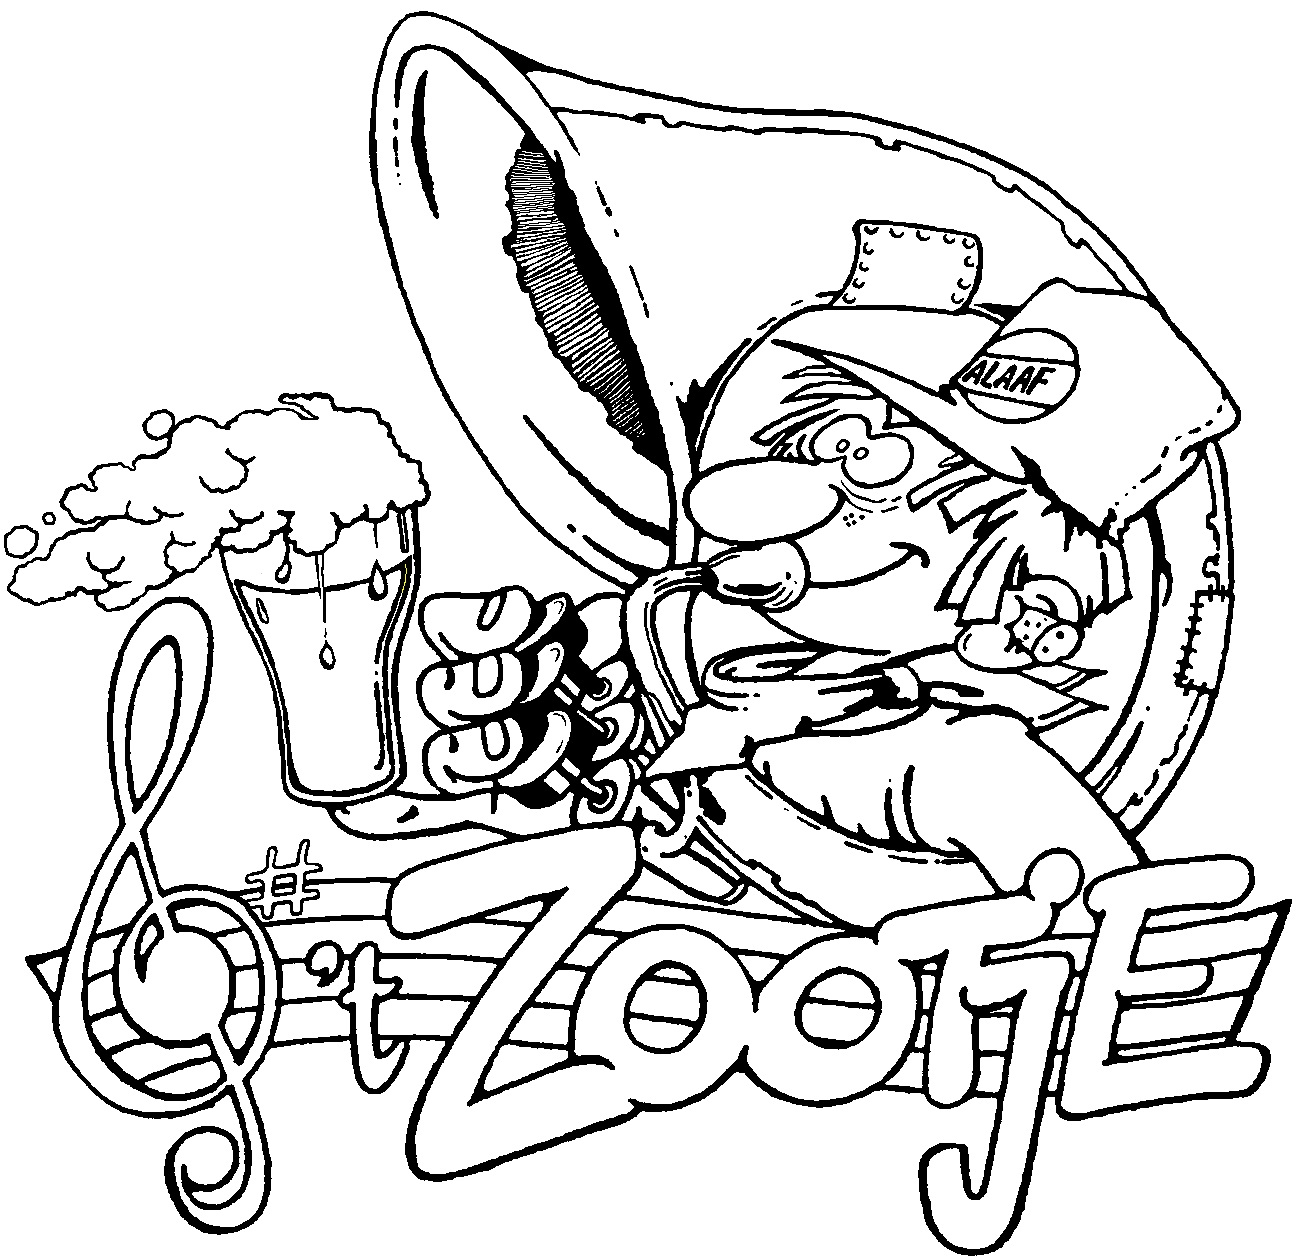 t Zootje sticker 04